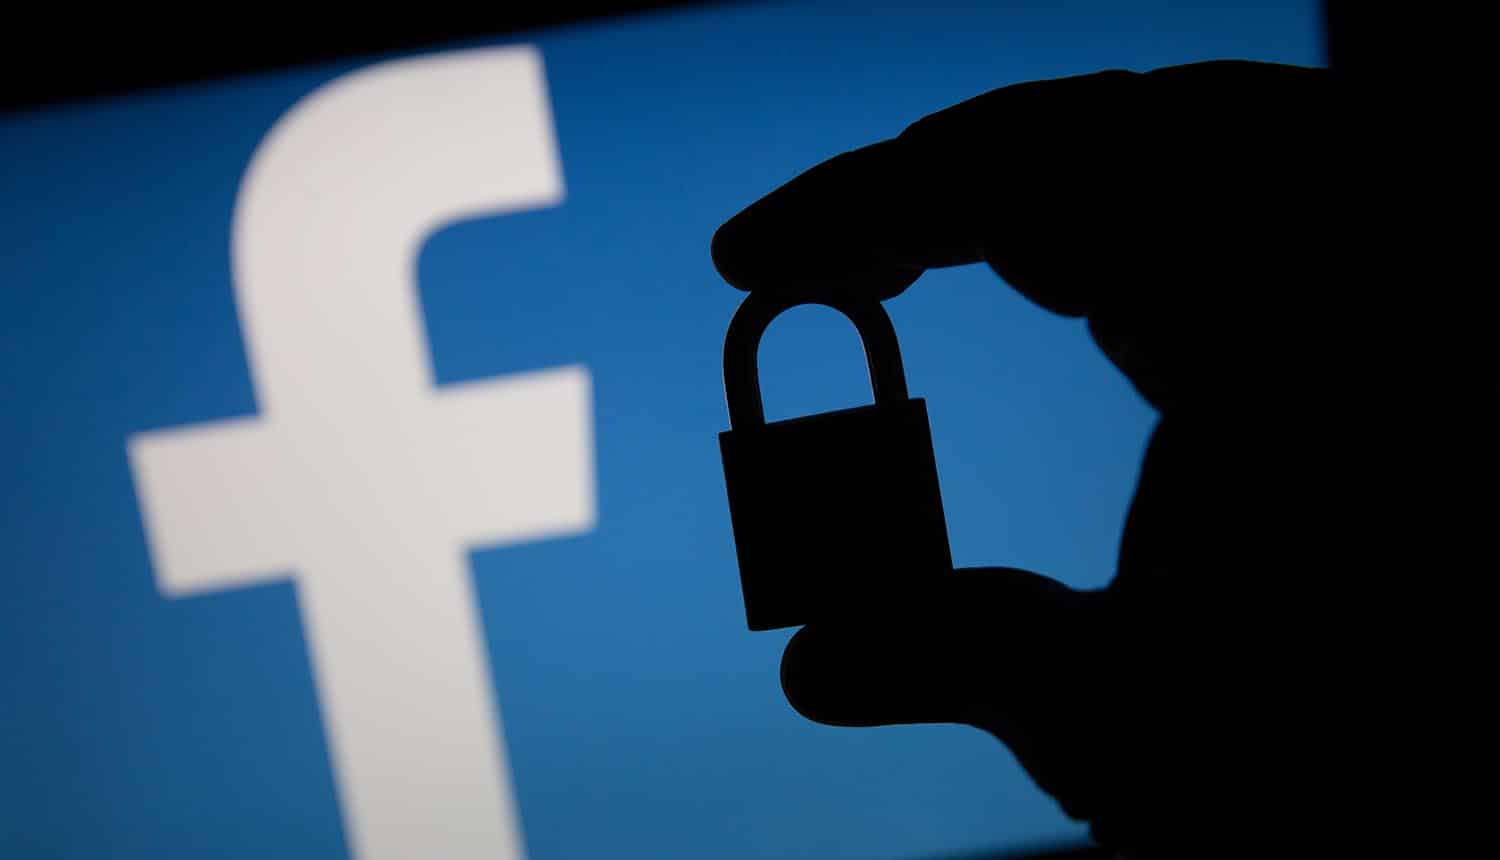 Silhouette of a hand holding a padlock in front of Facebook logo showing security flaw that led to biggest data breach